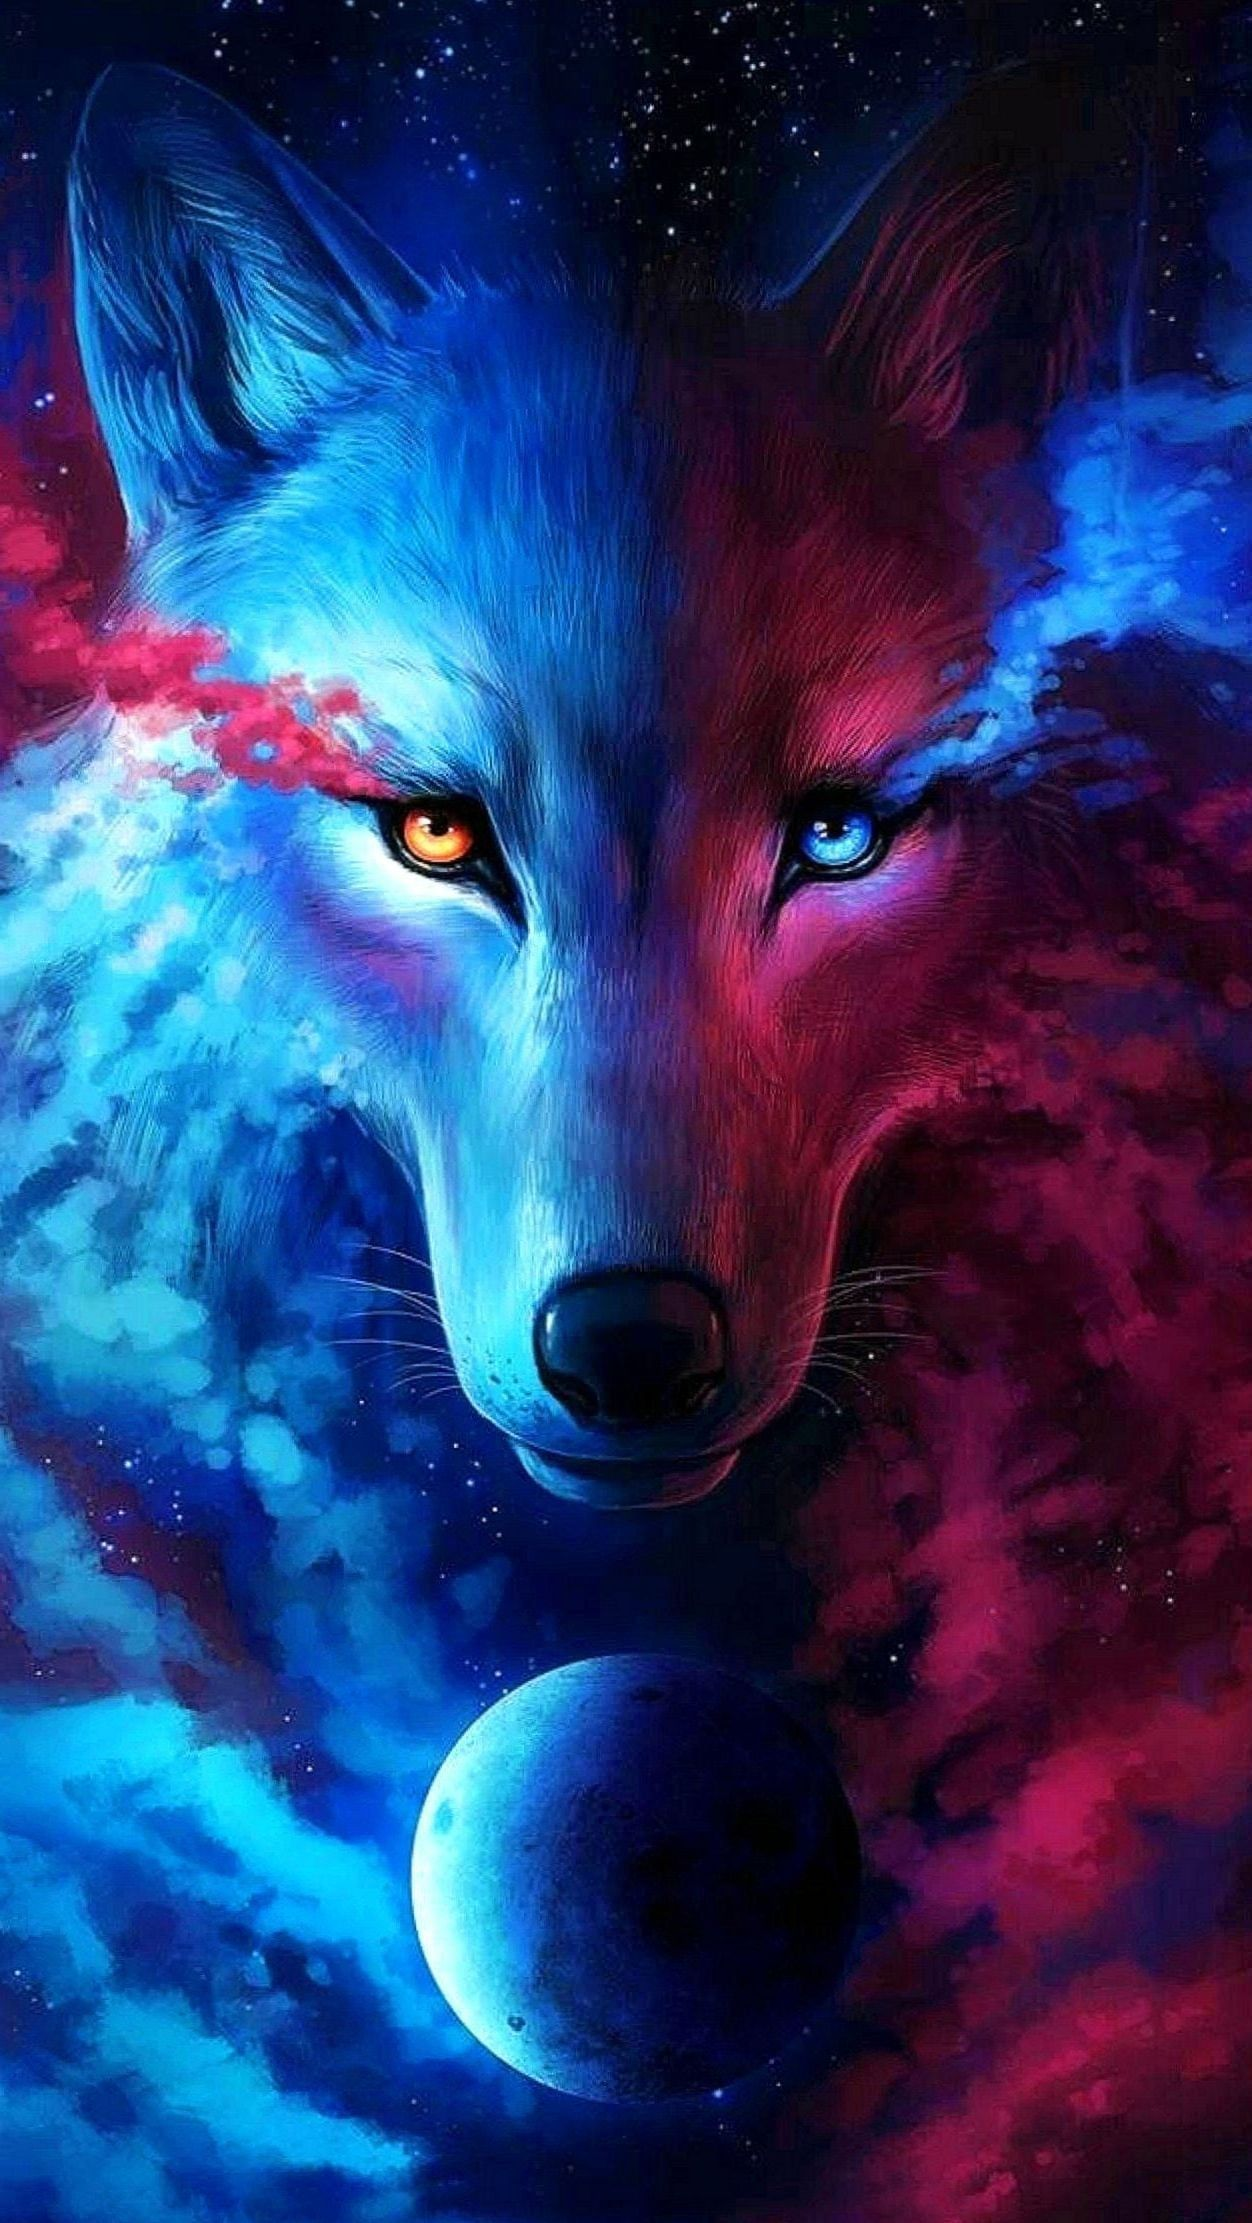 Awesome Anime Wolves Wallpapers Wolf Wallpaper Anime Wolf Awesome Anime